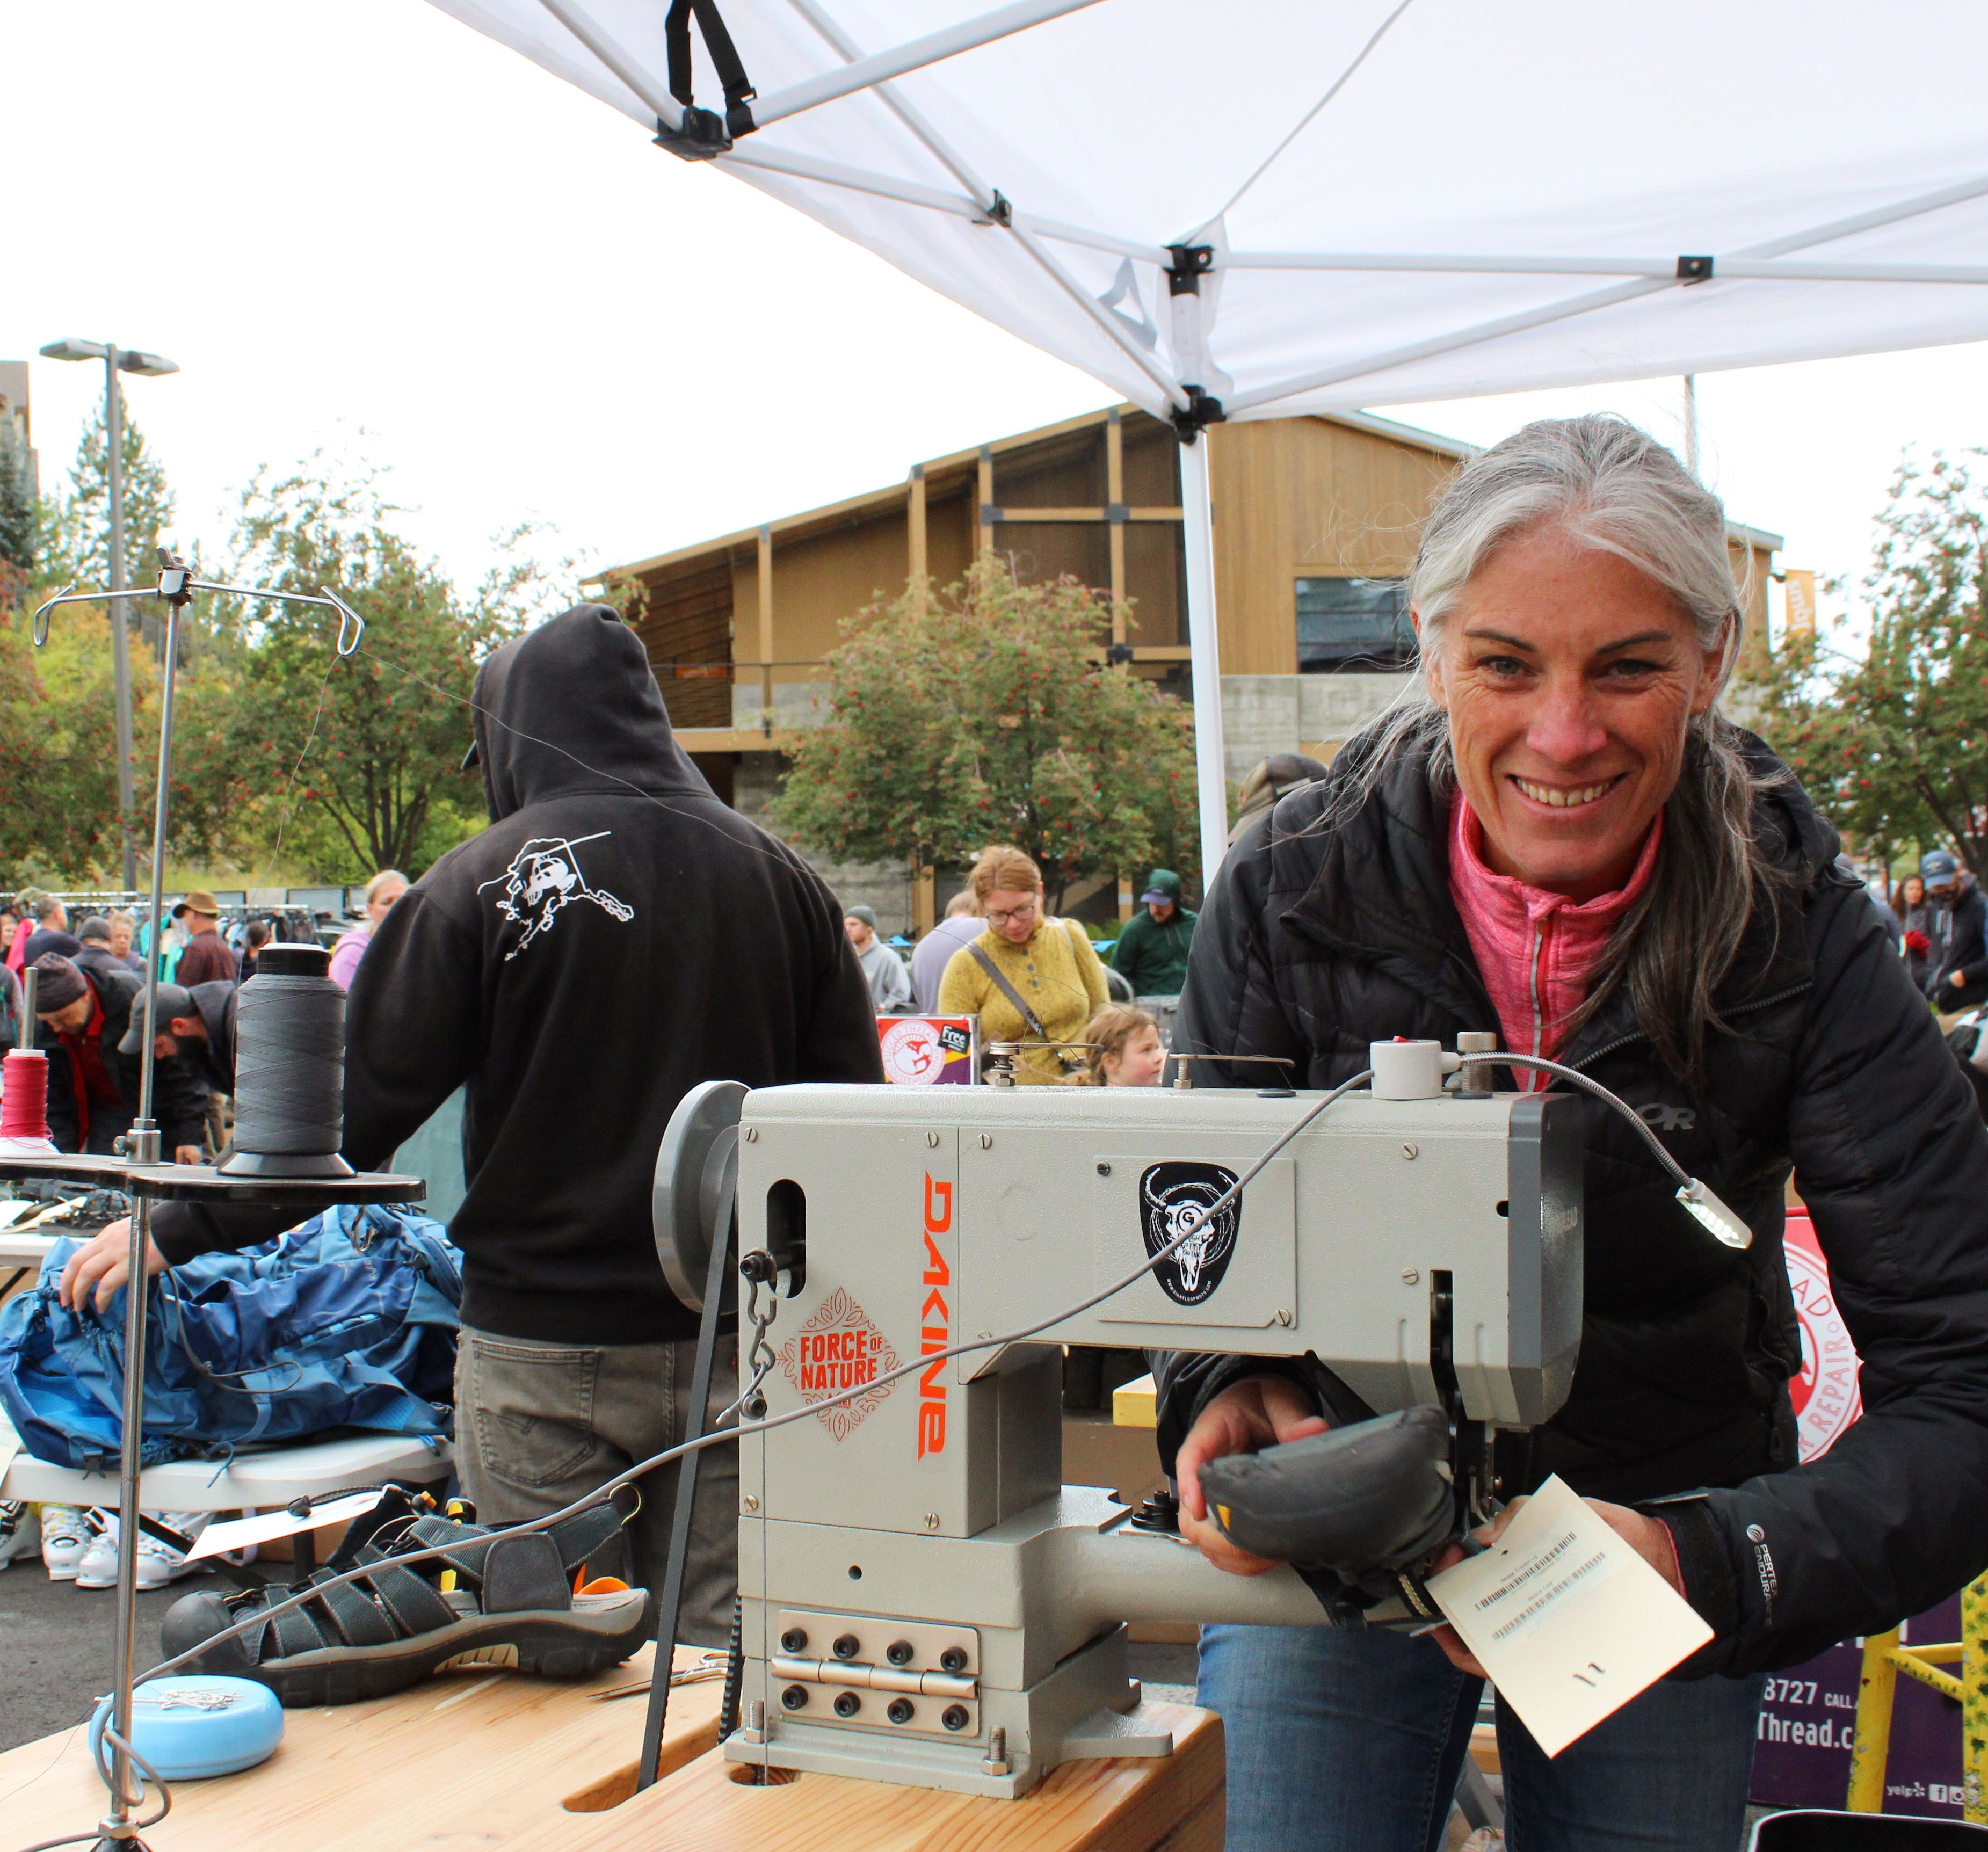 Kim Kinney Founder and CEO Rugged Thread at a mobile repair event